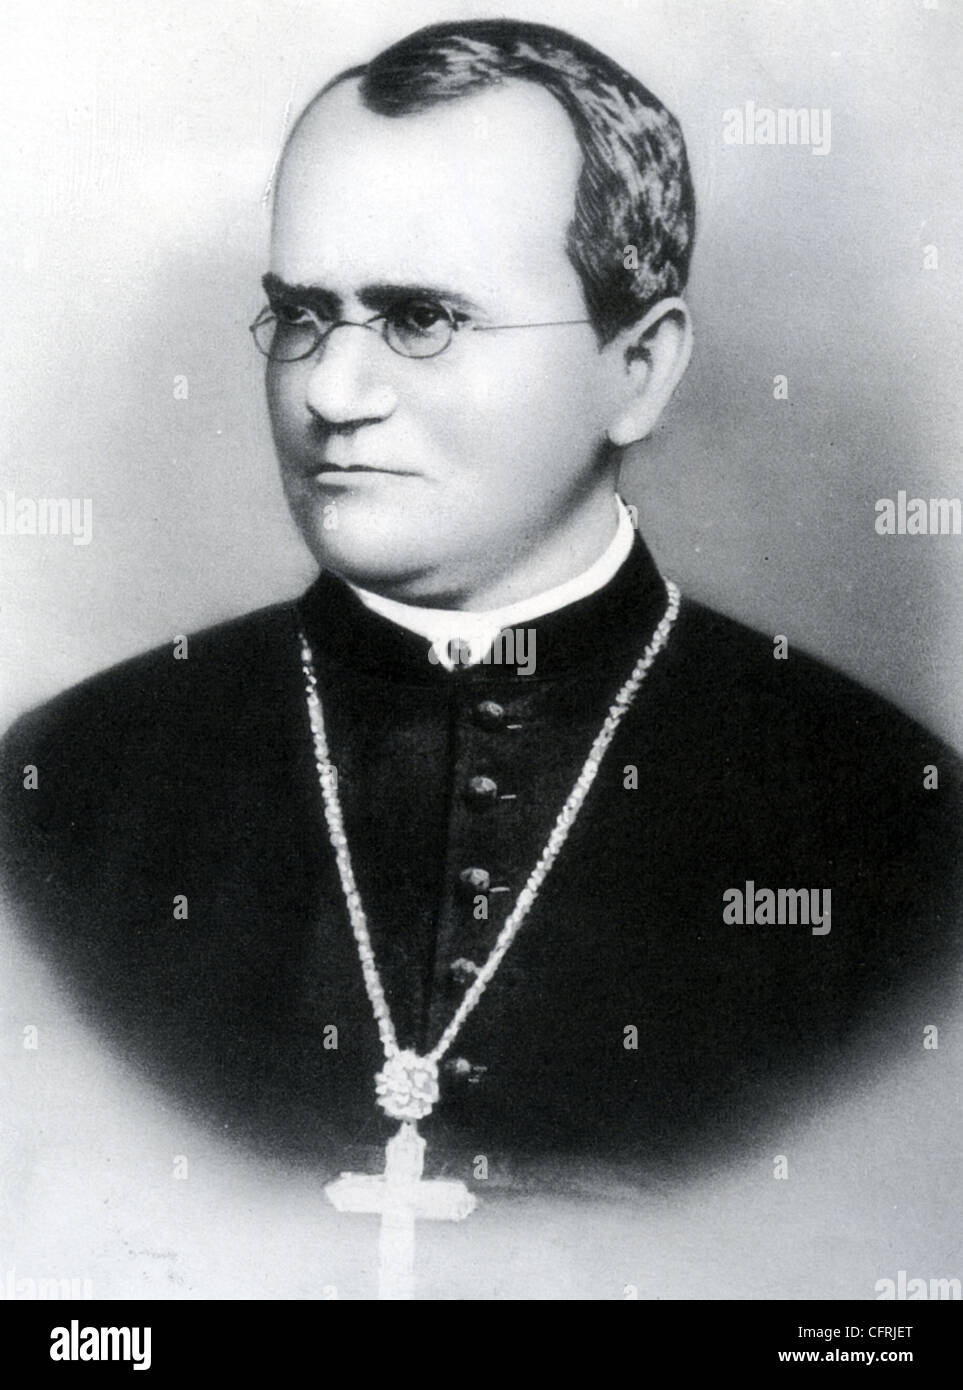 a biography of gregor mendel an austrian biologist Discover unexpected relationships between famous figures when you explore our famous scientists group  gregor mendel gregor mendel was an austrian monk who discovered the basic.